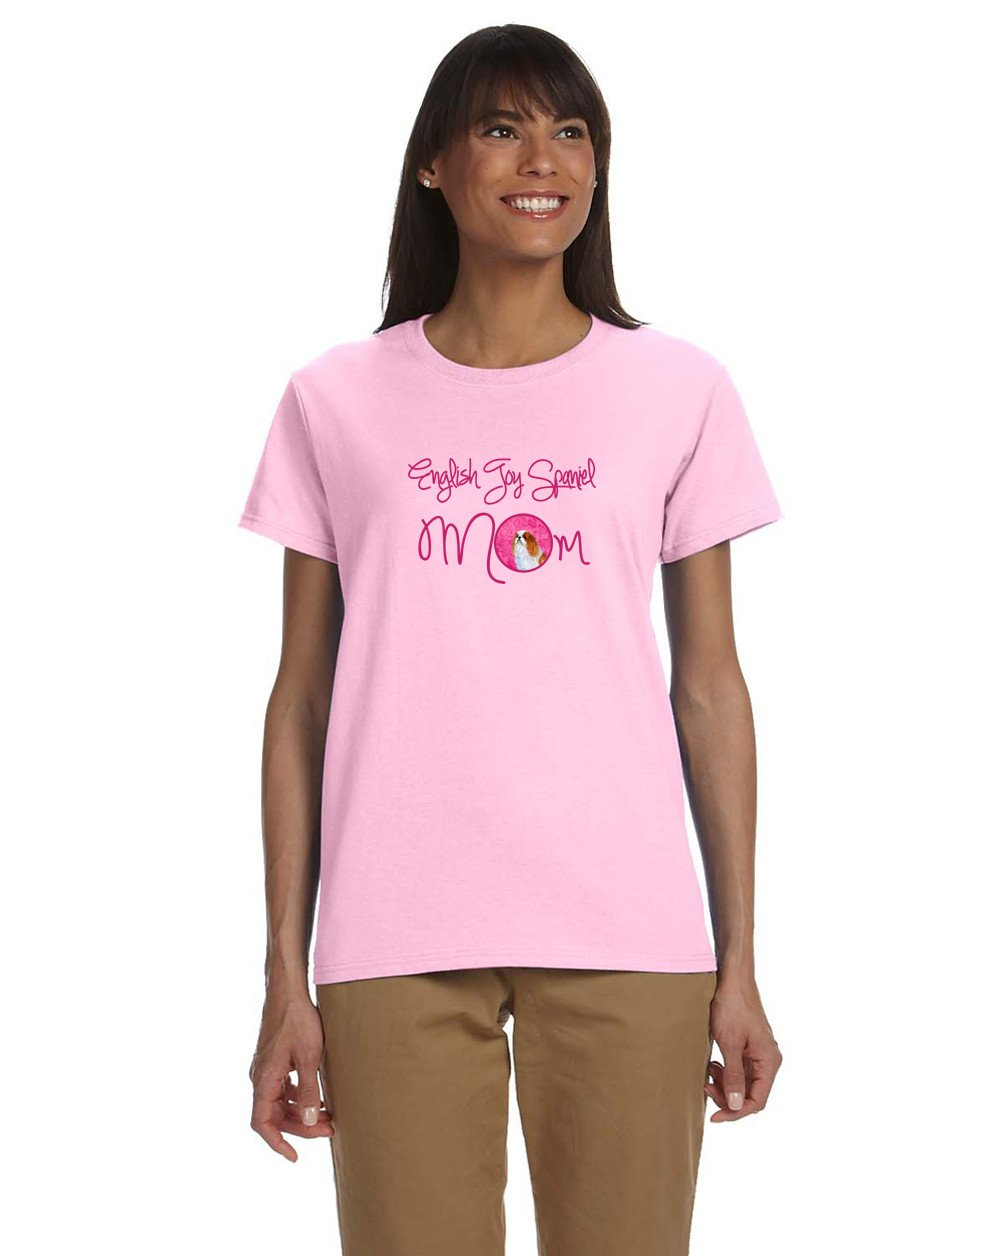 Buy this Pink English Toy Spaniel Mom T-shirt Ladies Cut Short Sleeve Extra Large